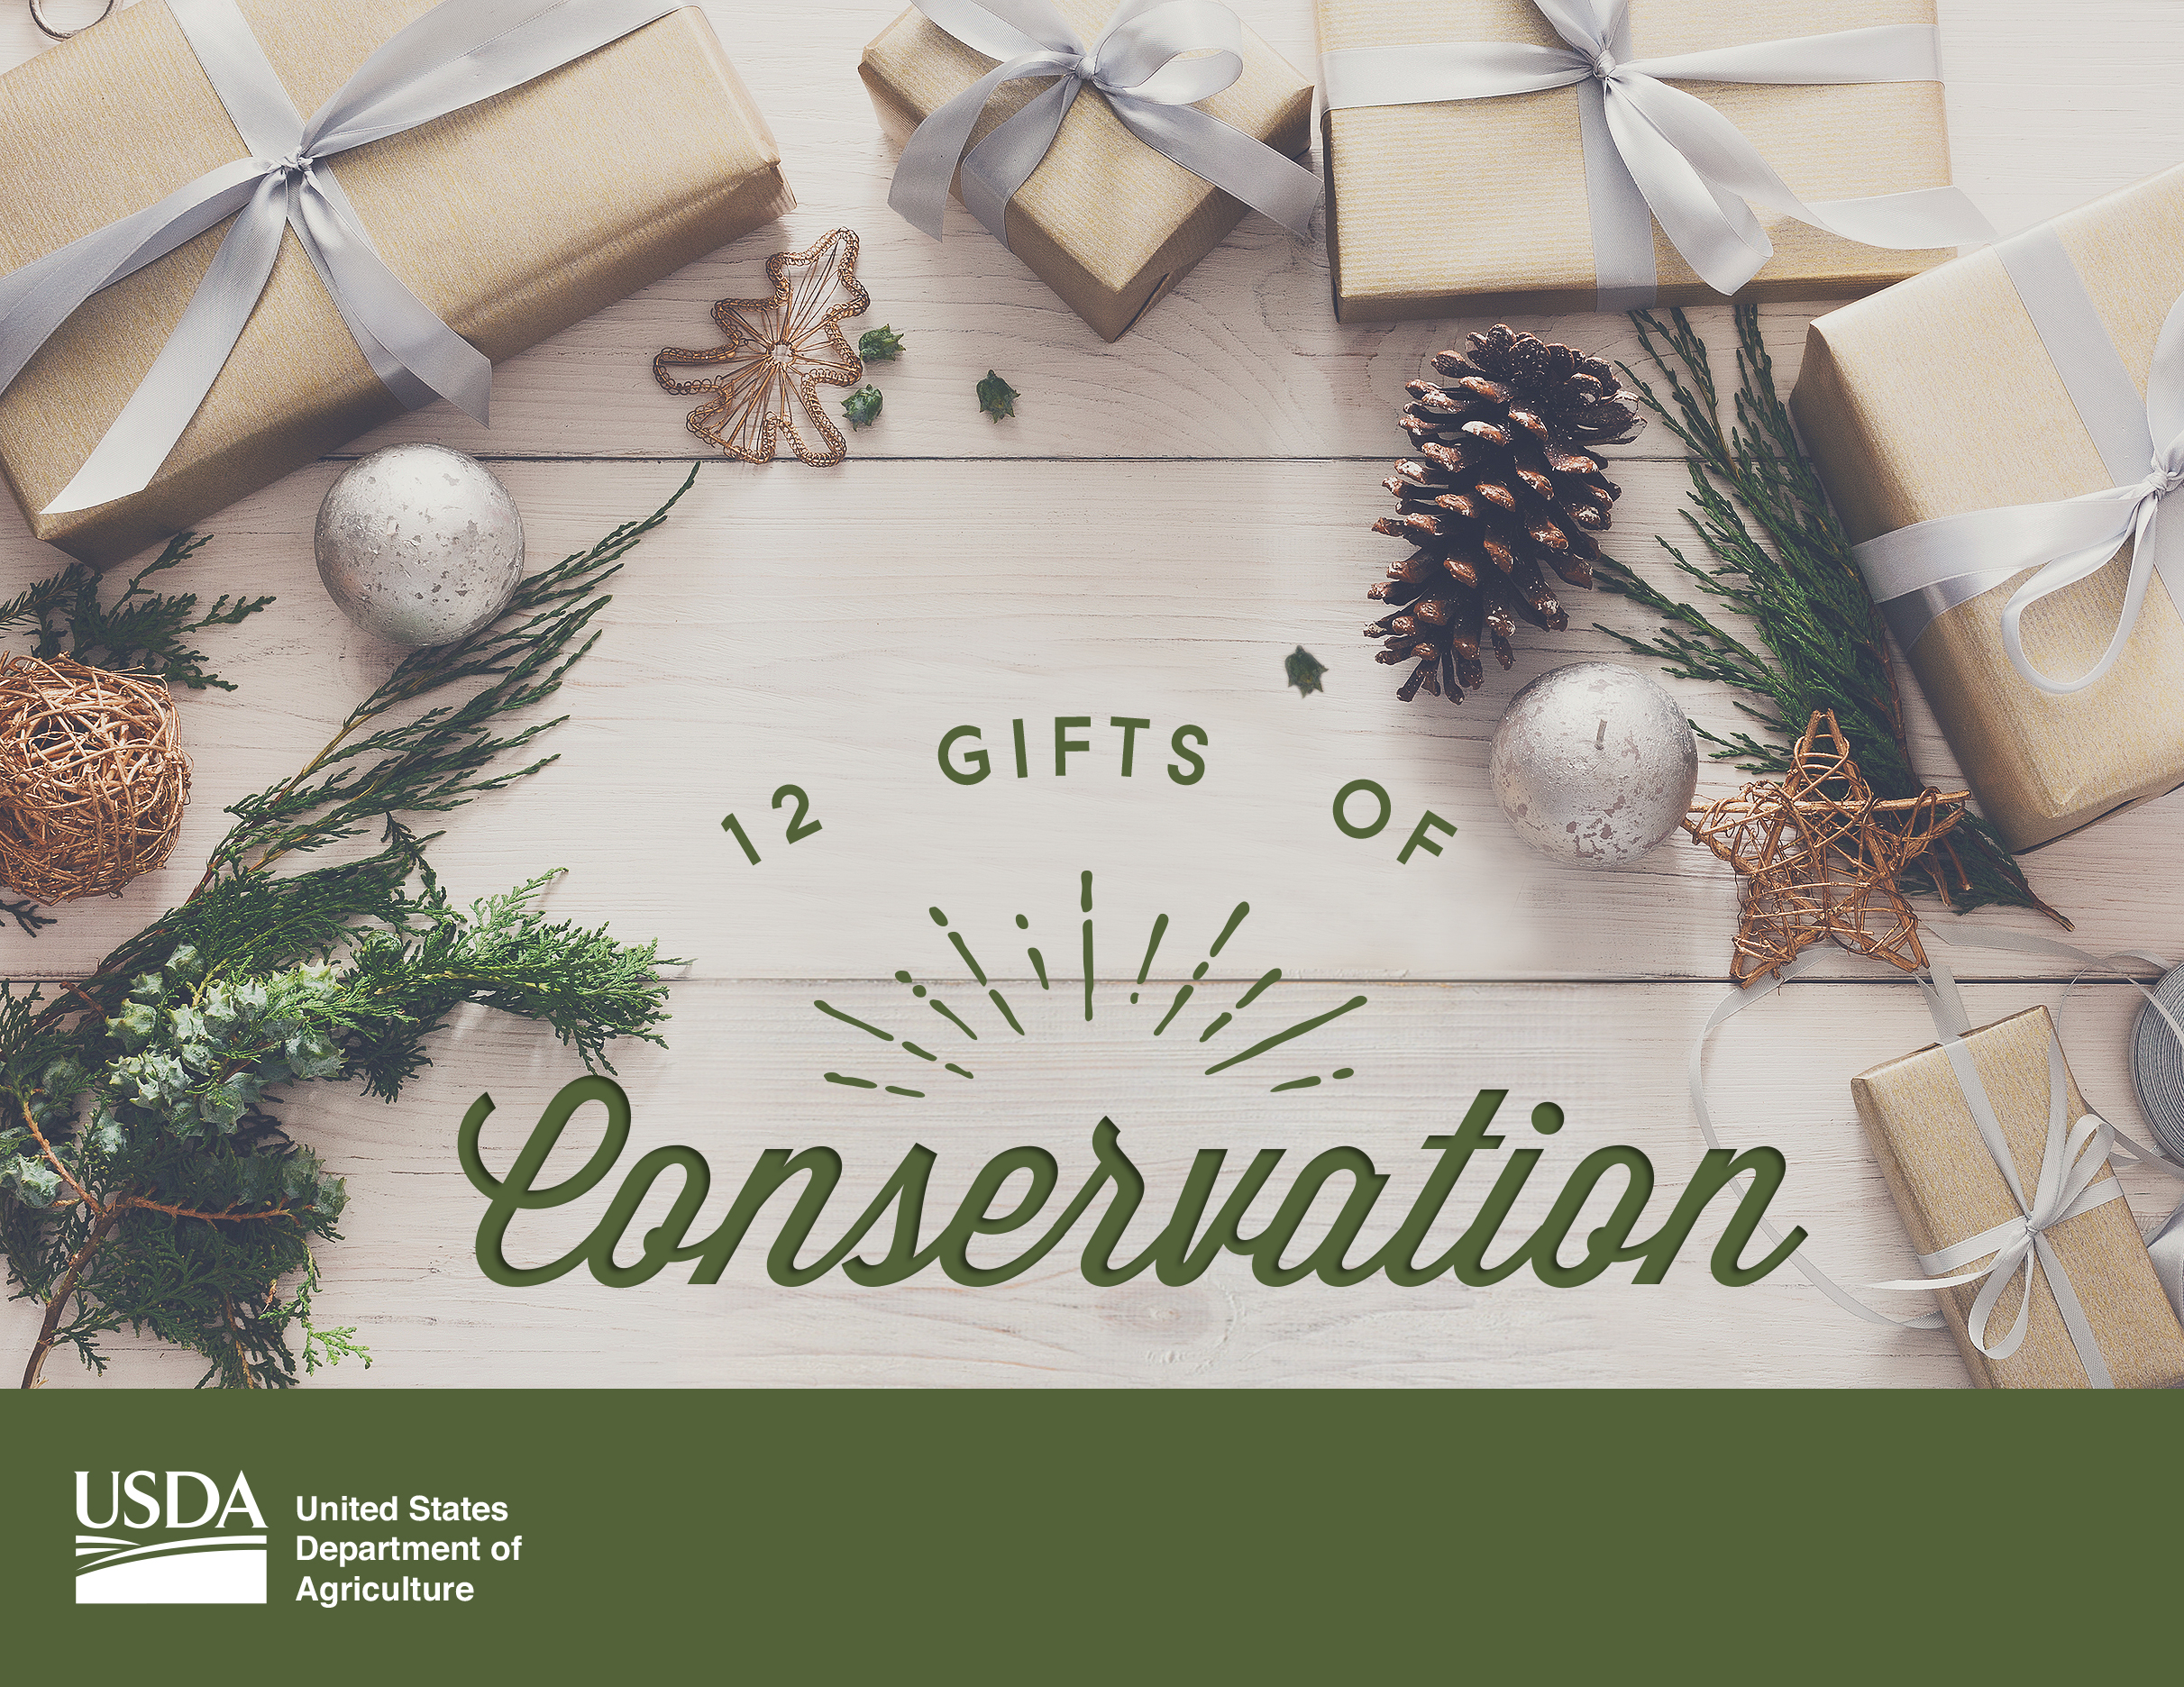 12 Gifts of Conservation